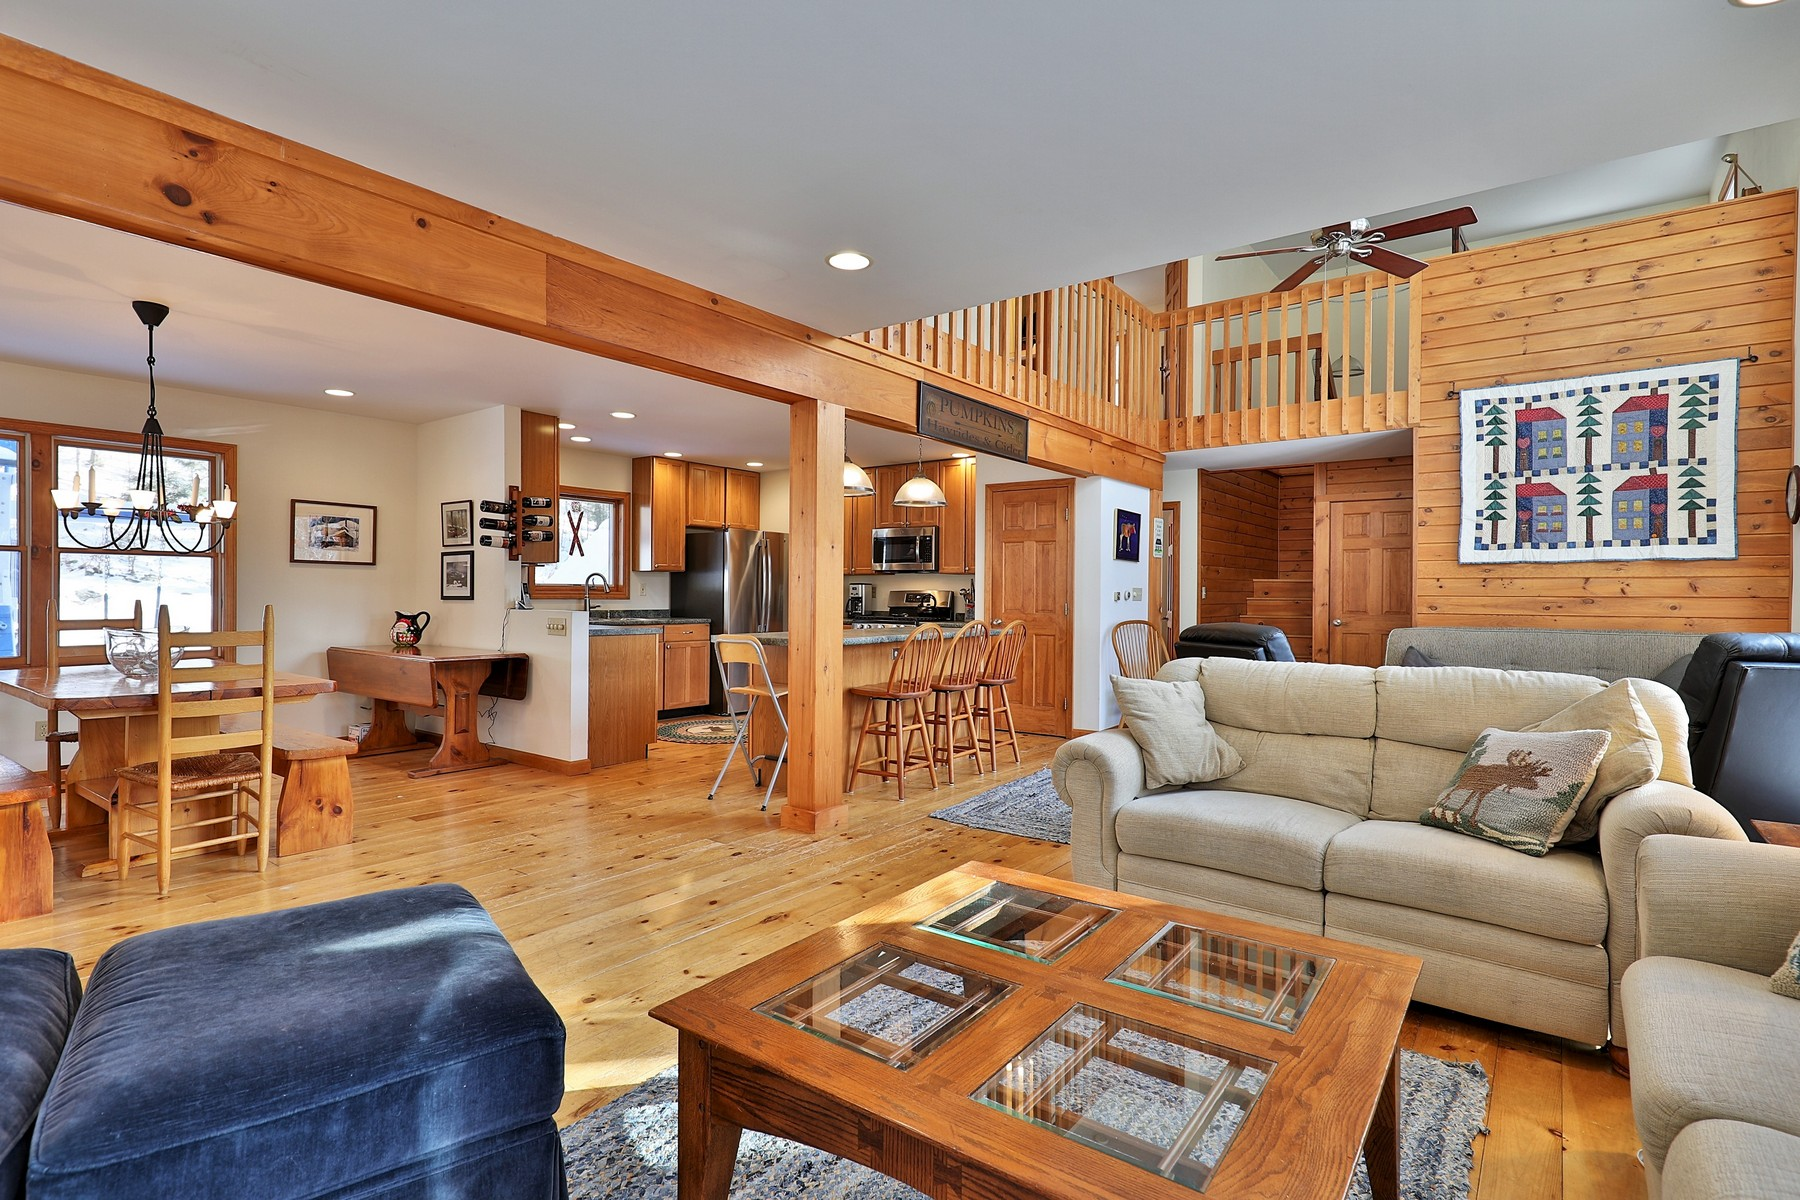 Single Family Homes for Sale at Furnished and Ready to Go! 256 Bowlsville (south) Rd Mount Holly, Vermont 05758 United States